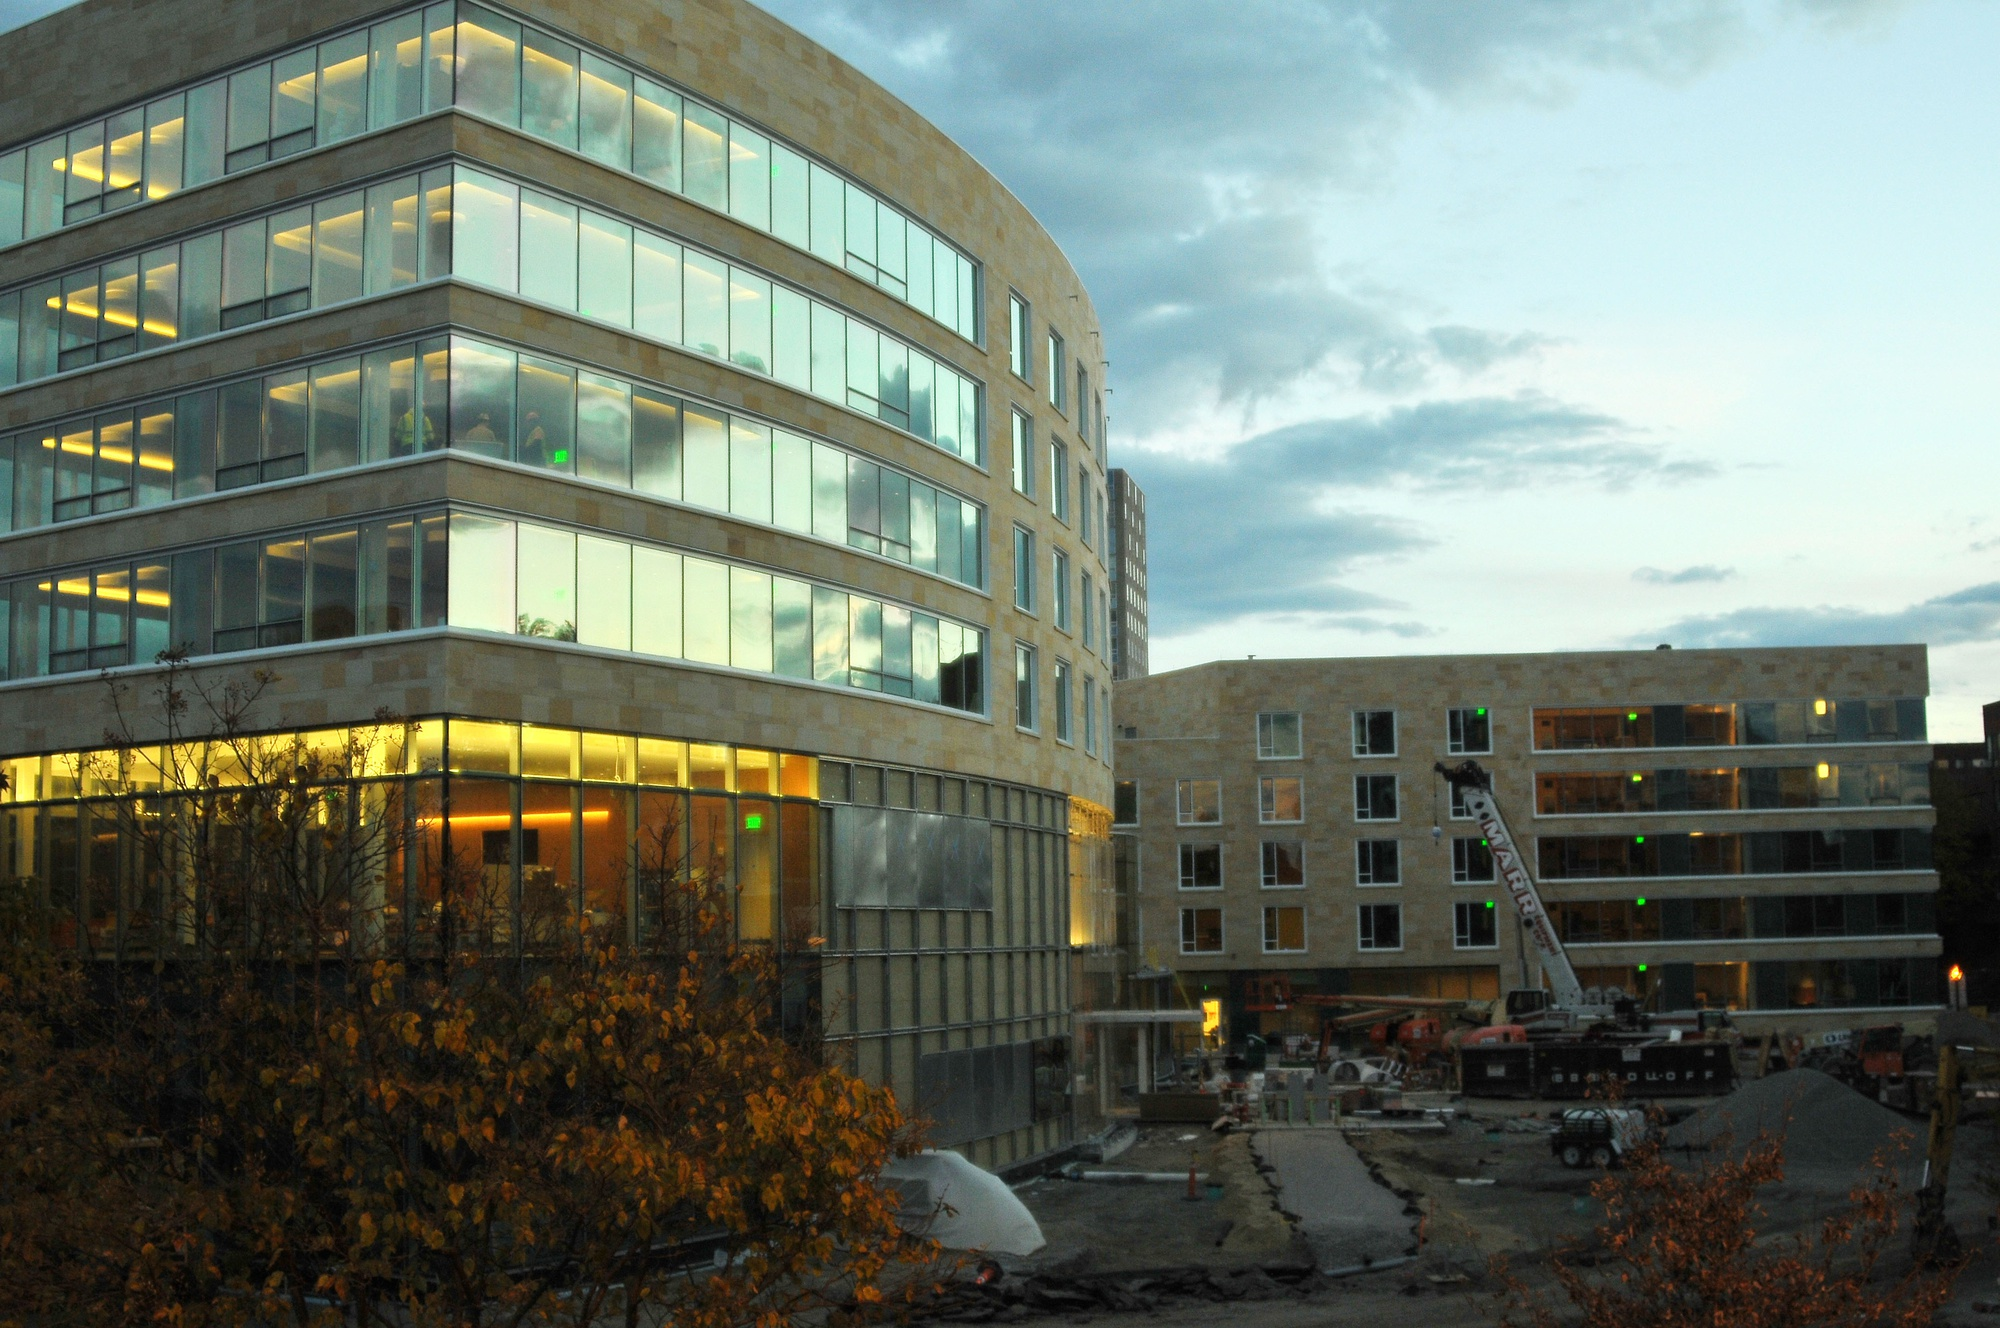 Tata Hall, the newest addition to the Harvard Business School campus, is slated for completion later this year.